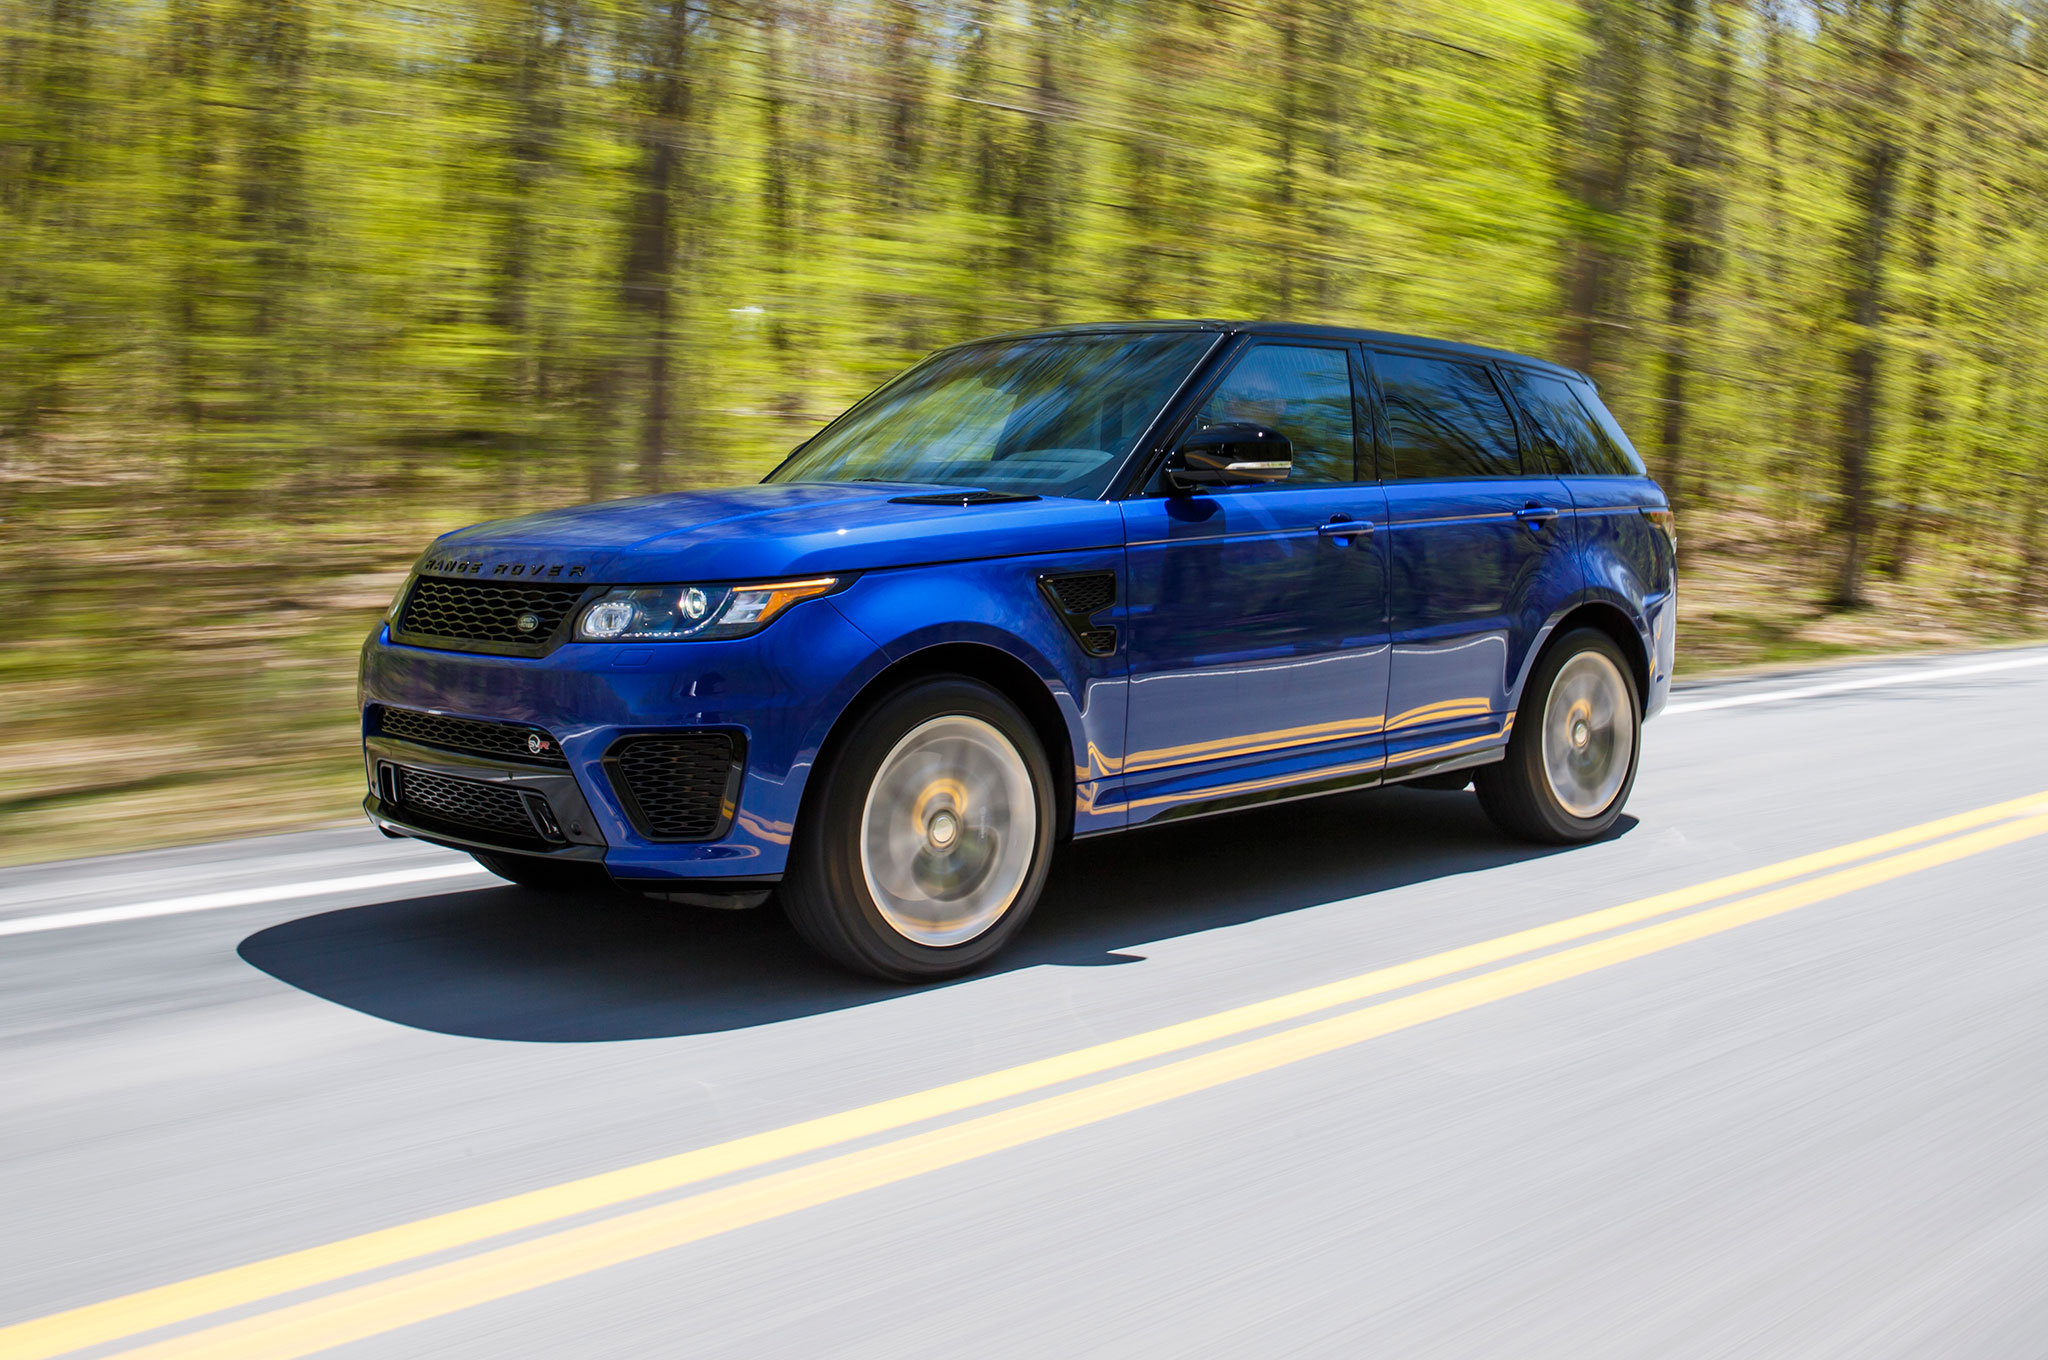 2015 Range Rover Sport SVR Front Three Quarter Motion 11